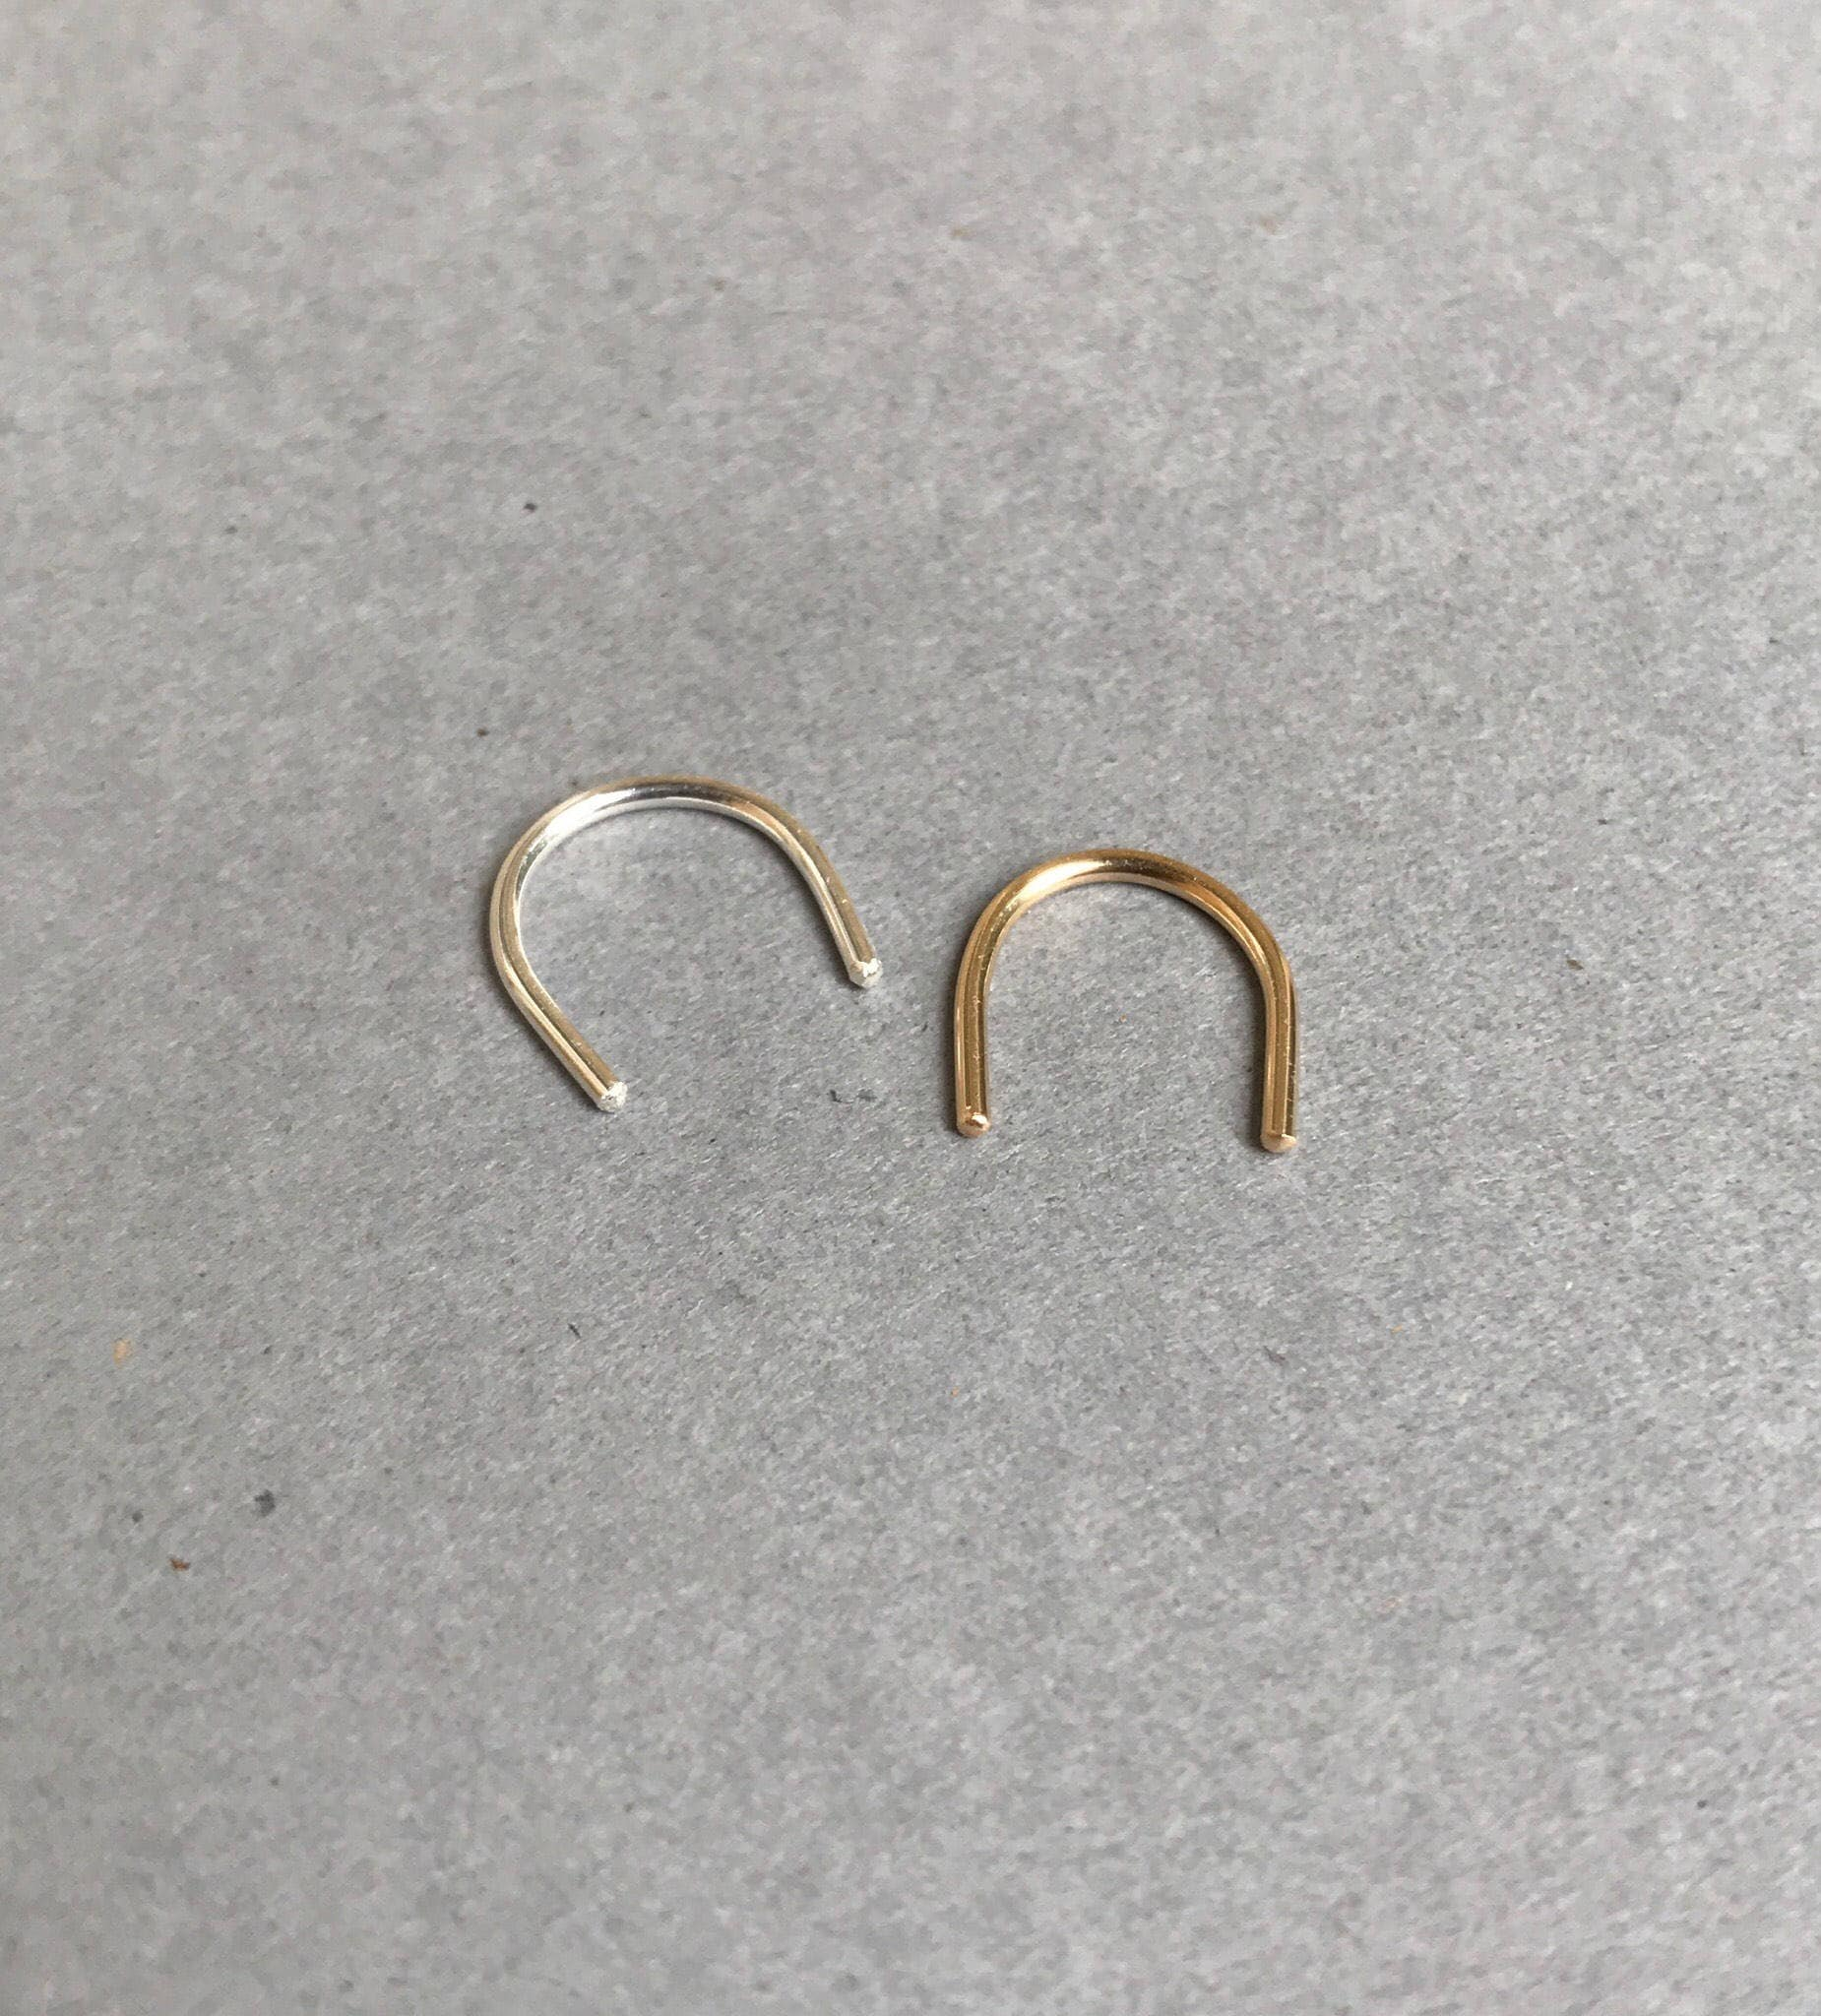 how to put in nose ring retainer